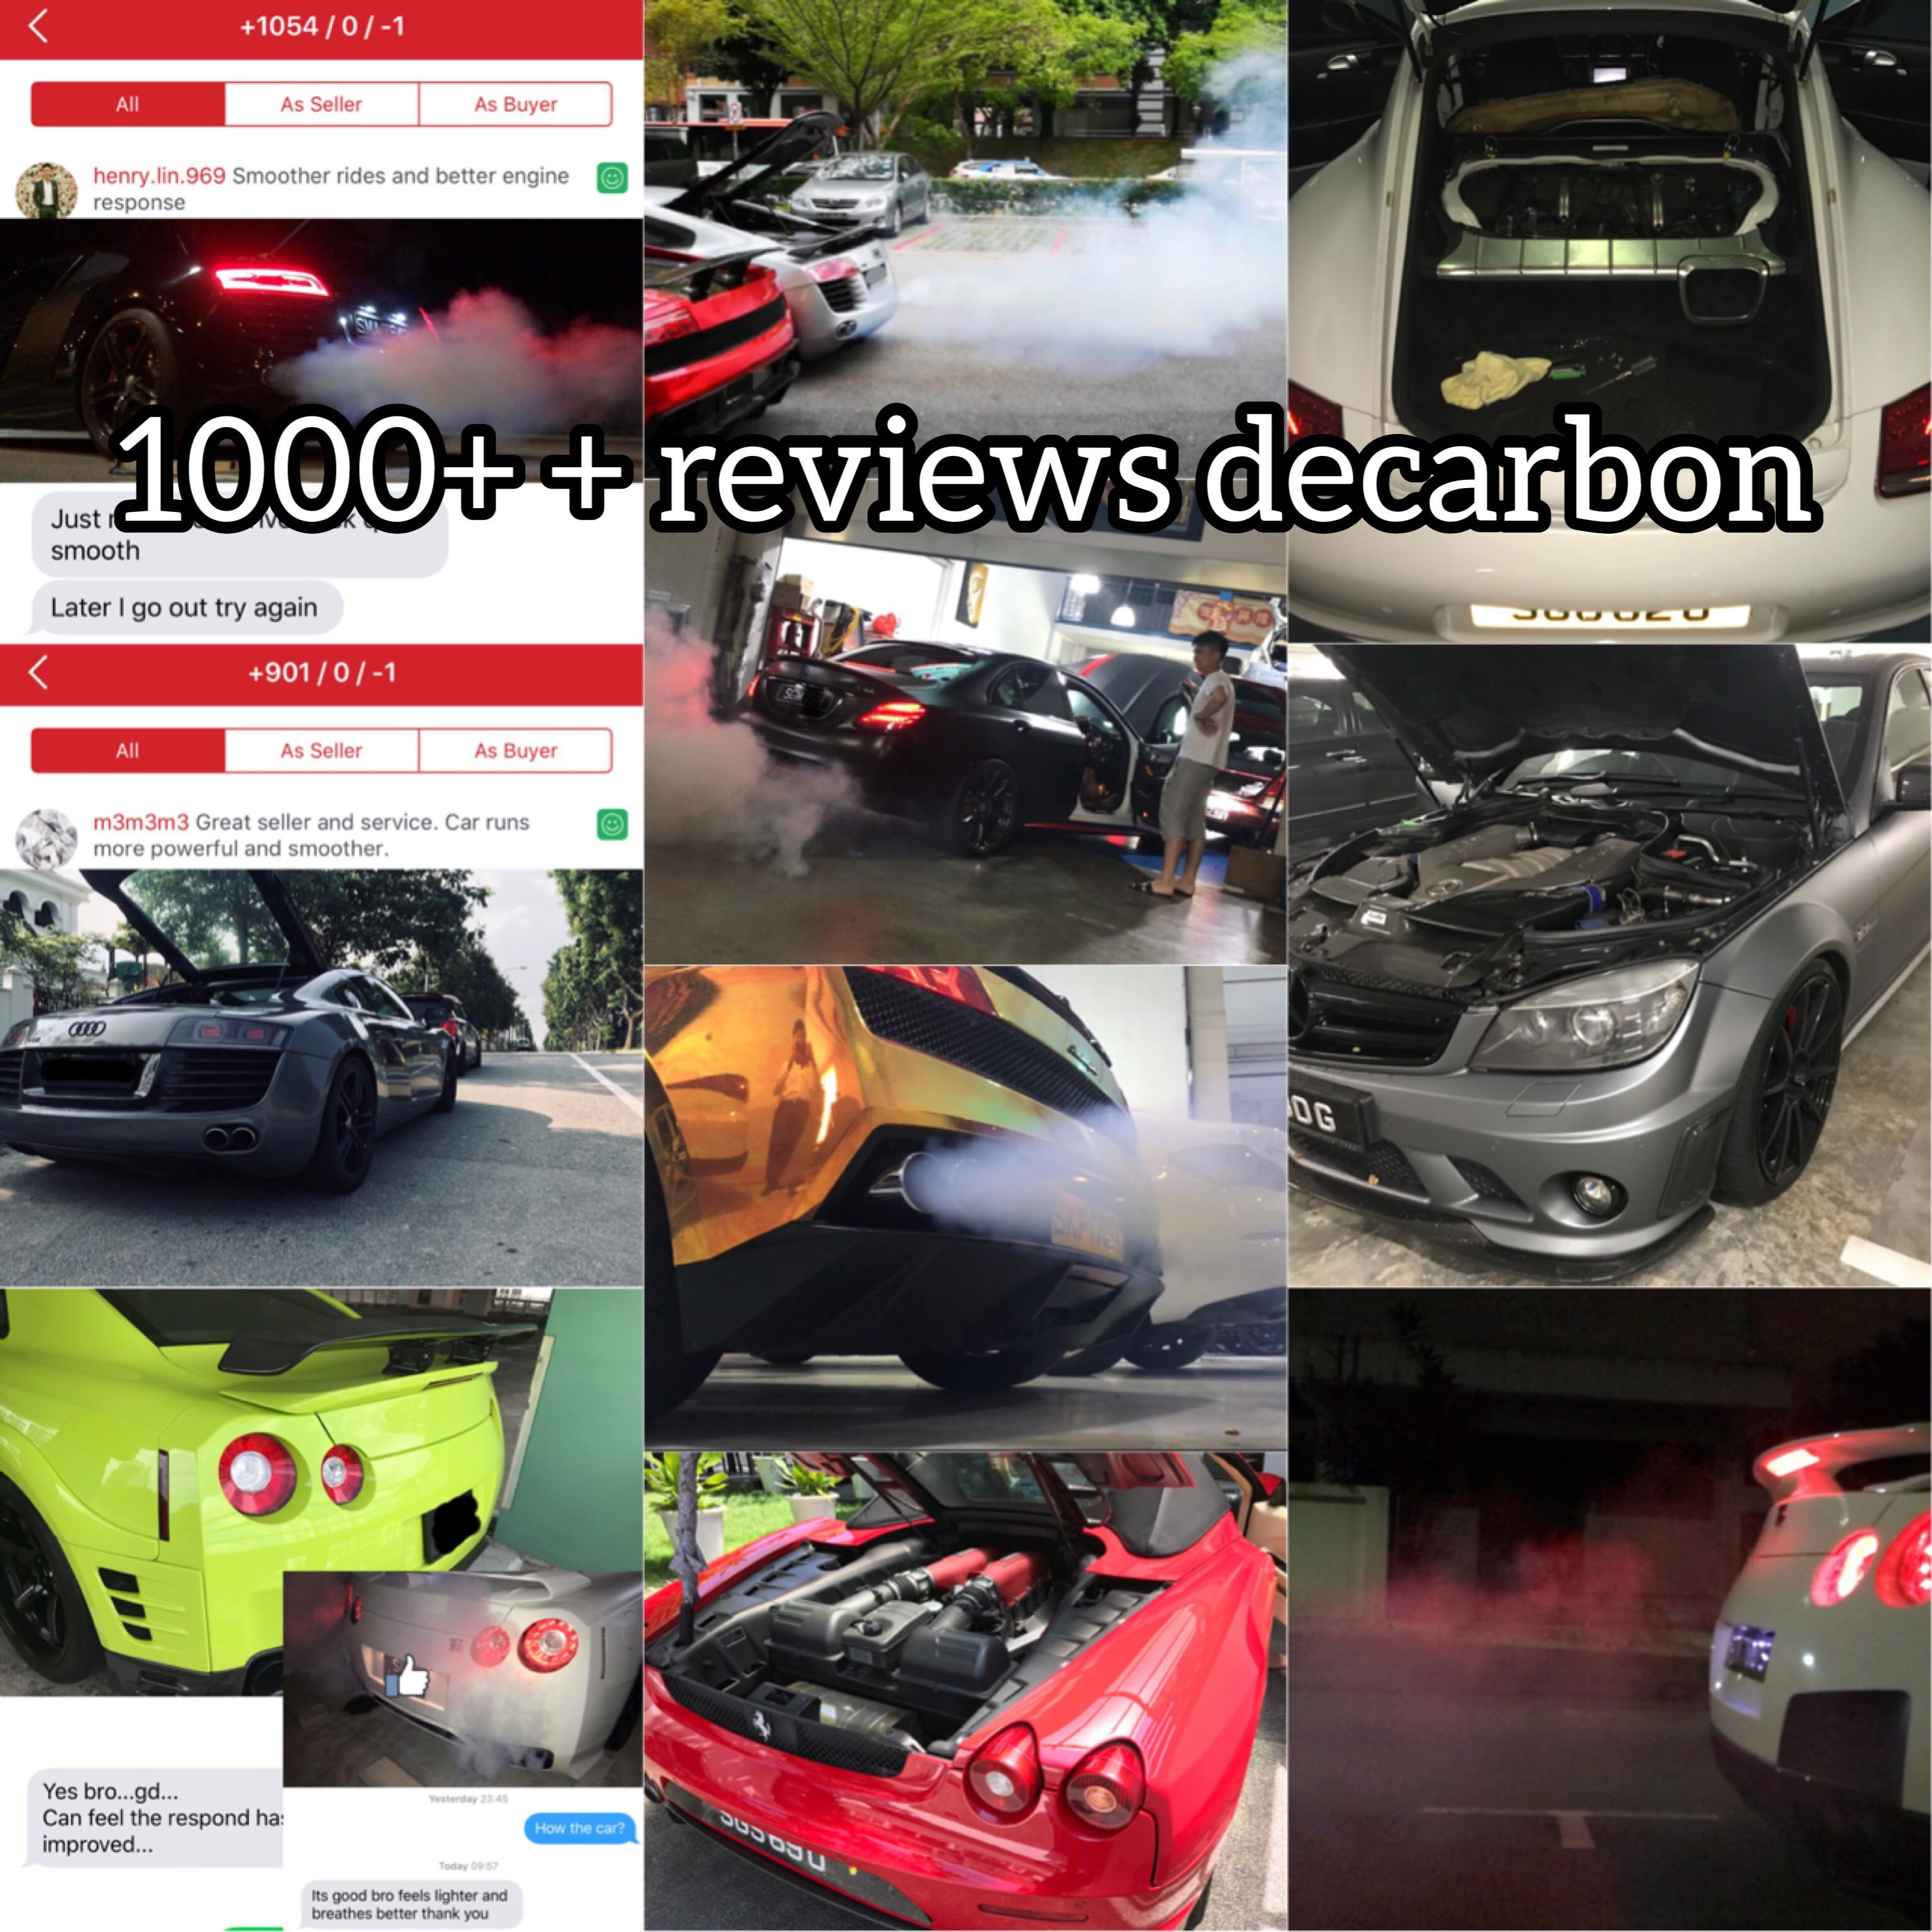 Decarbon Clear Carbon The Only 1000 Reviews Beware Of Imposter Per Tein Suzuki Swift Zc21 Photo